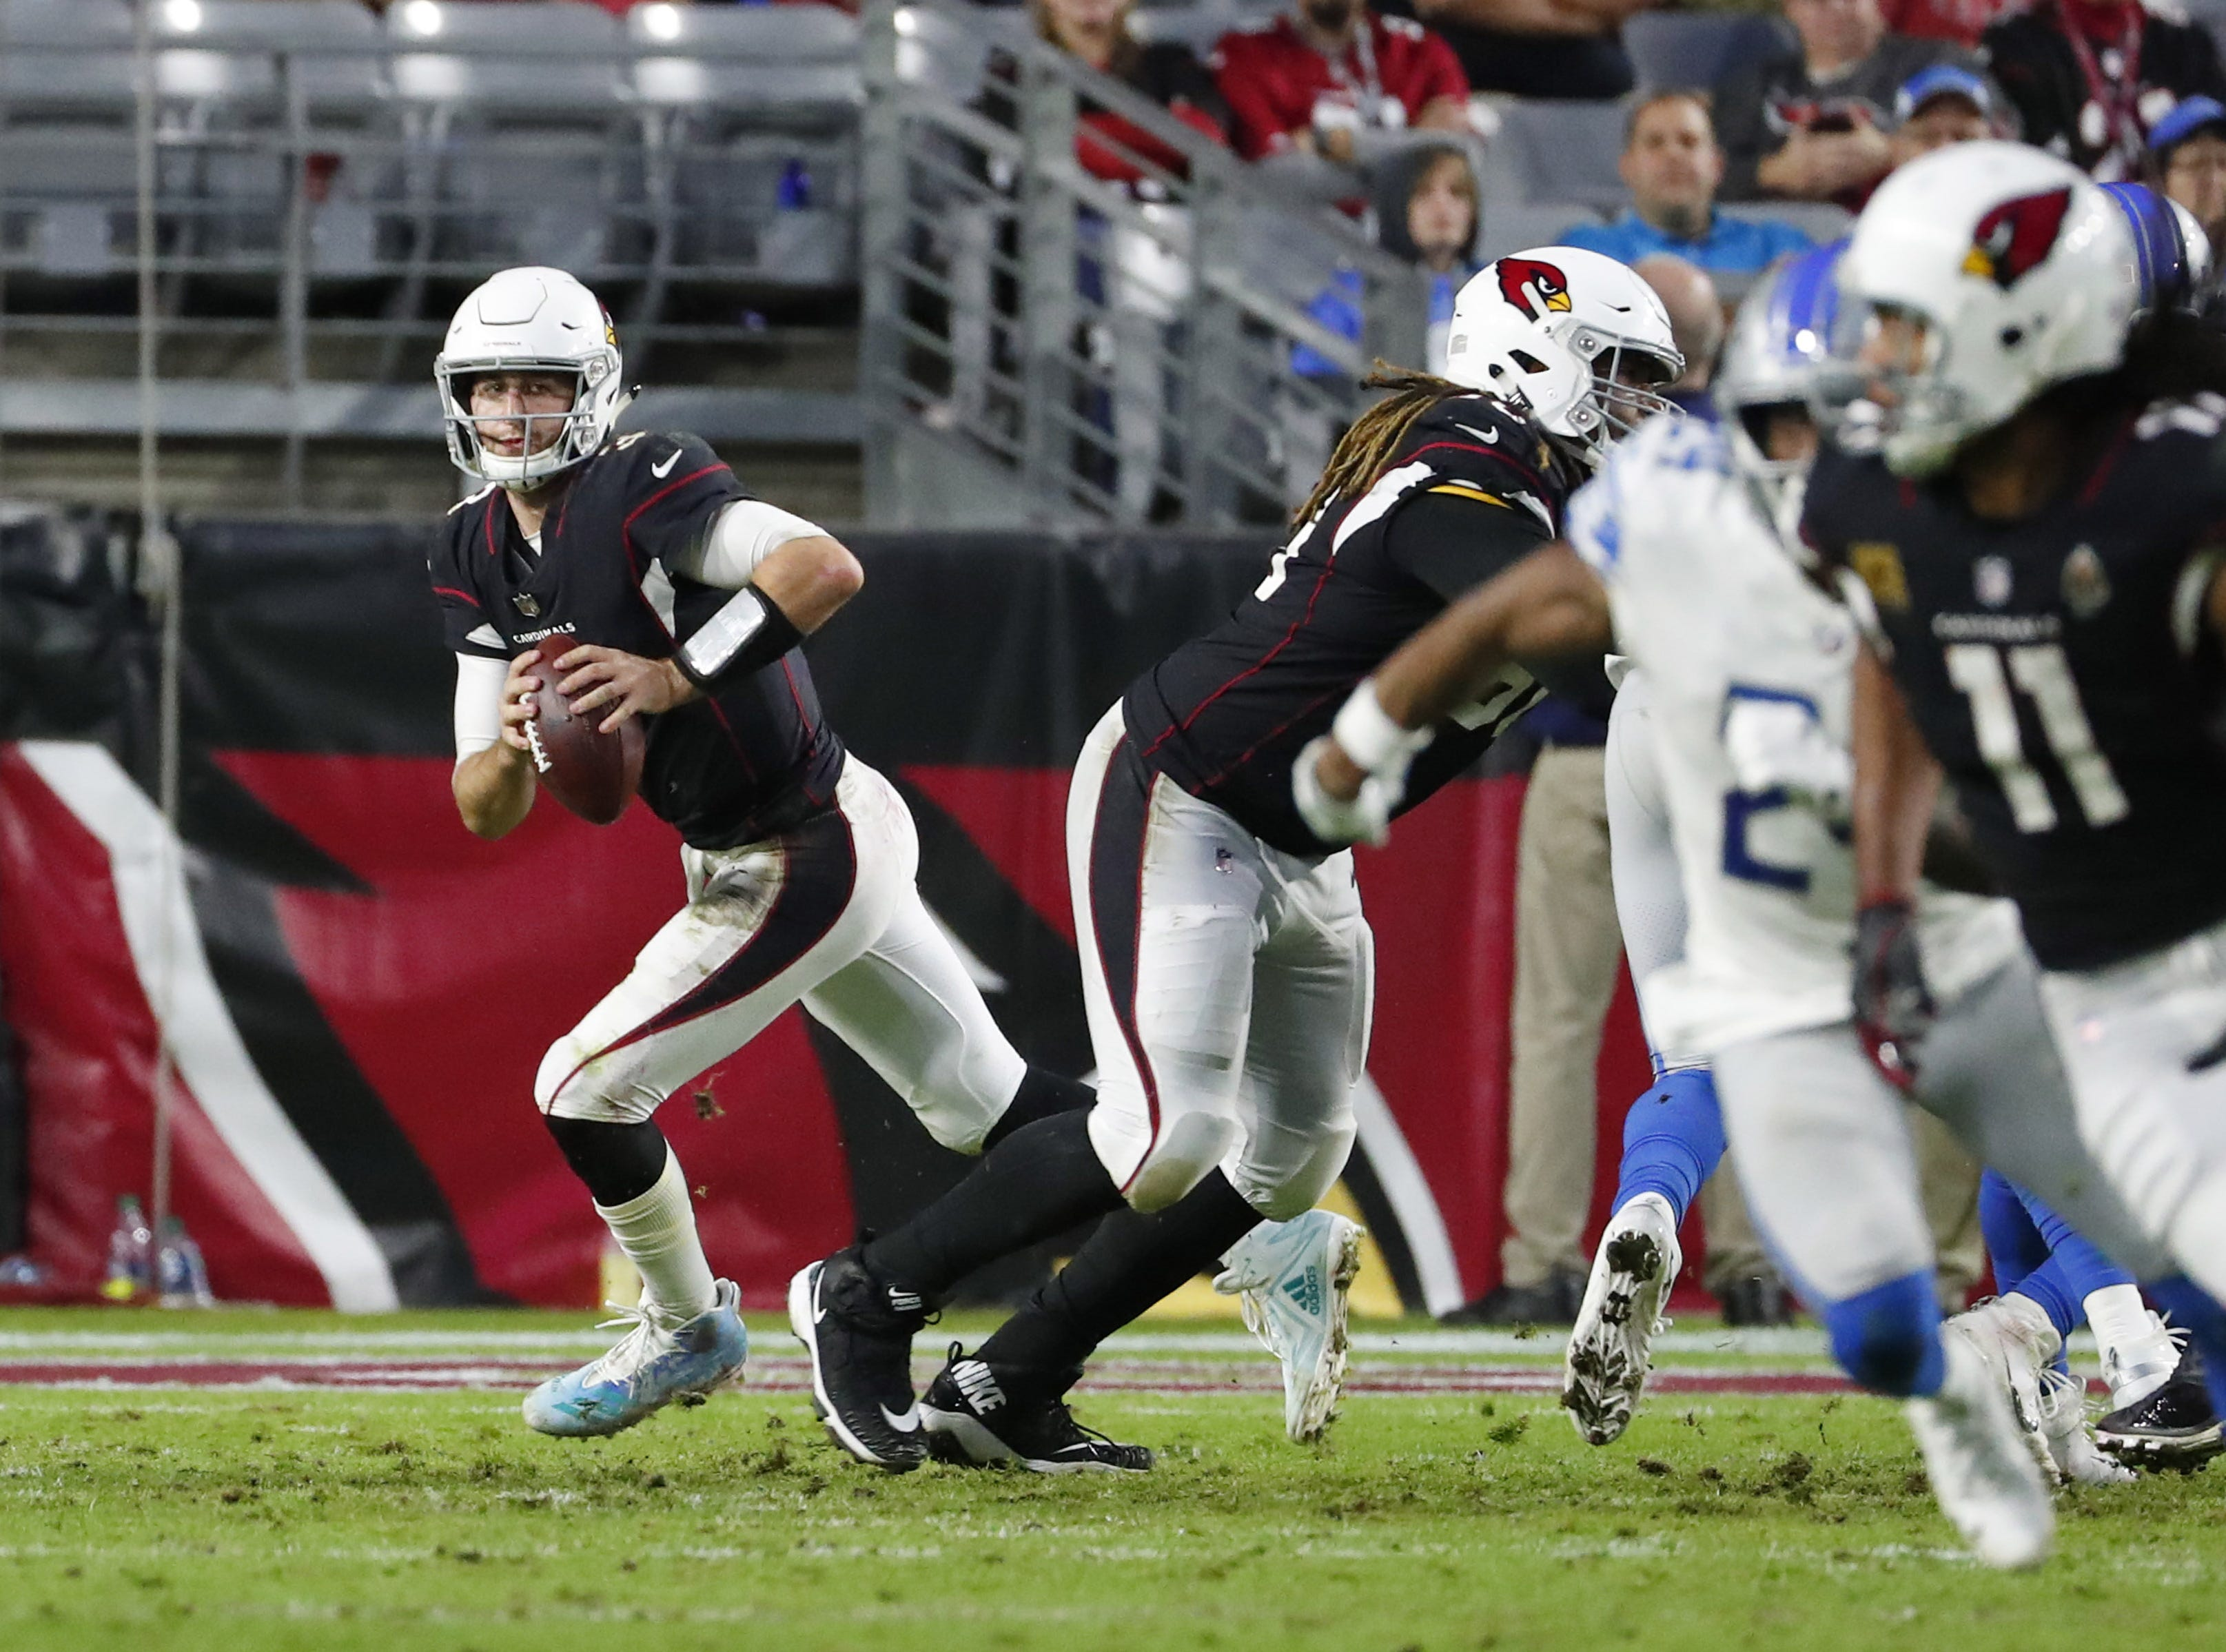 Arizona Cardinals quarterback Josh Rosen (3) scrambles away from pressure against the Detroit Lions during the second half in Glendale, Ariz. December 9.